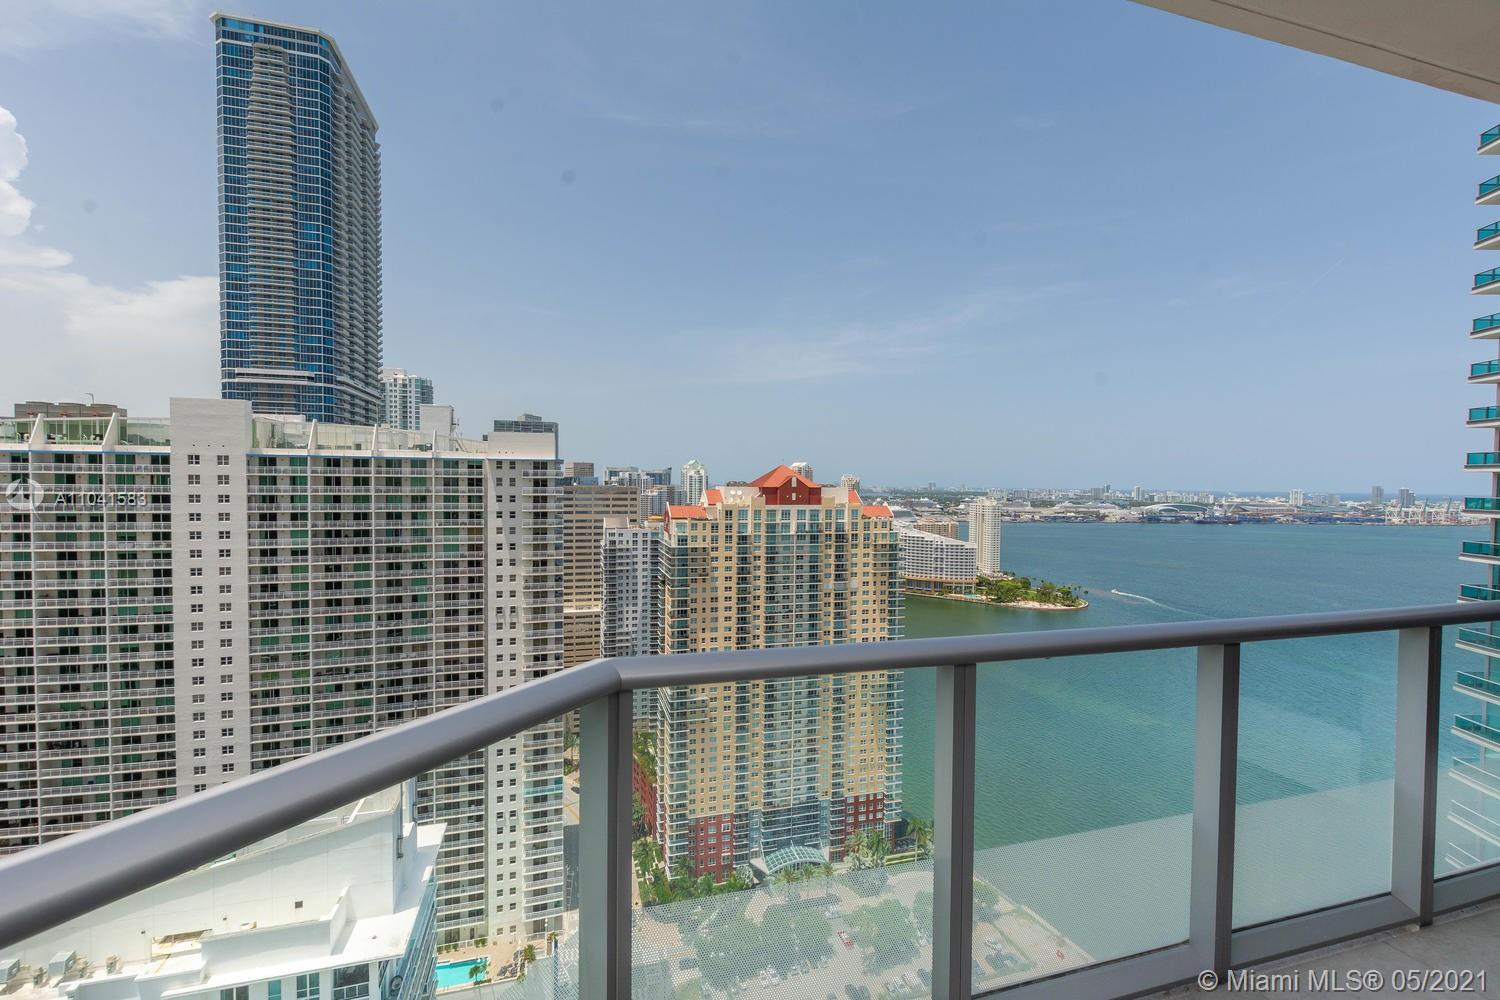 AMAZING PENTHOUSE UNIT IN DESIRED BRICKELL HOUSE LUXURY CONDO. 4 BEDS, 3.5 BATHS, OCEAN AND CITY VIEW FROM 2 BALCONIES. RESORT STYLE SERVICE, 2 POOLS(INCLUDING ROOF TOP), CLUB ROOM, GYM, KIDS ROOM, BBQ AREA AND MORE.